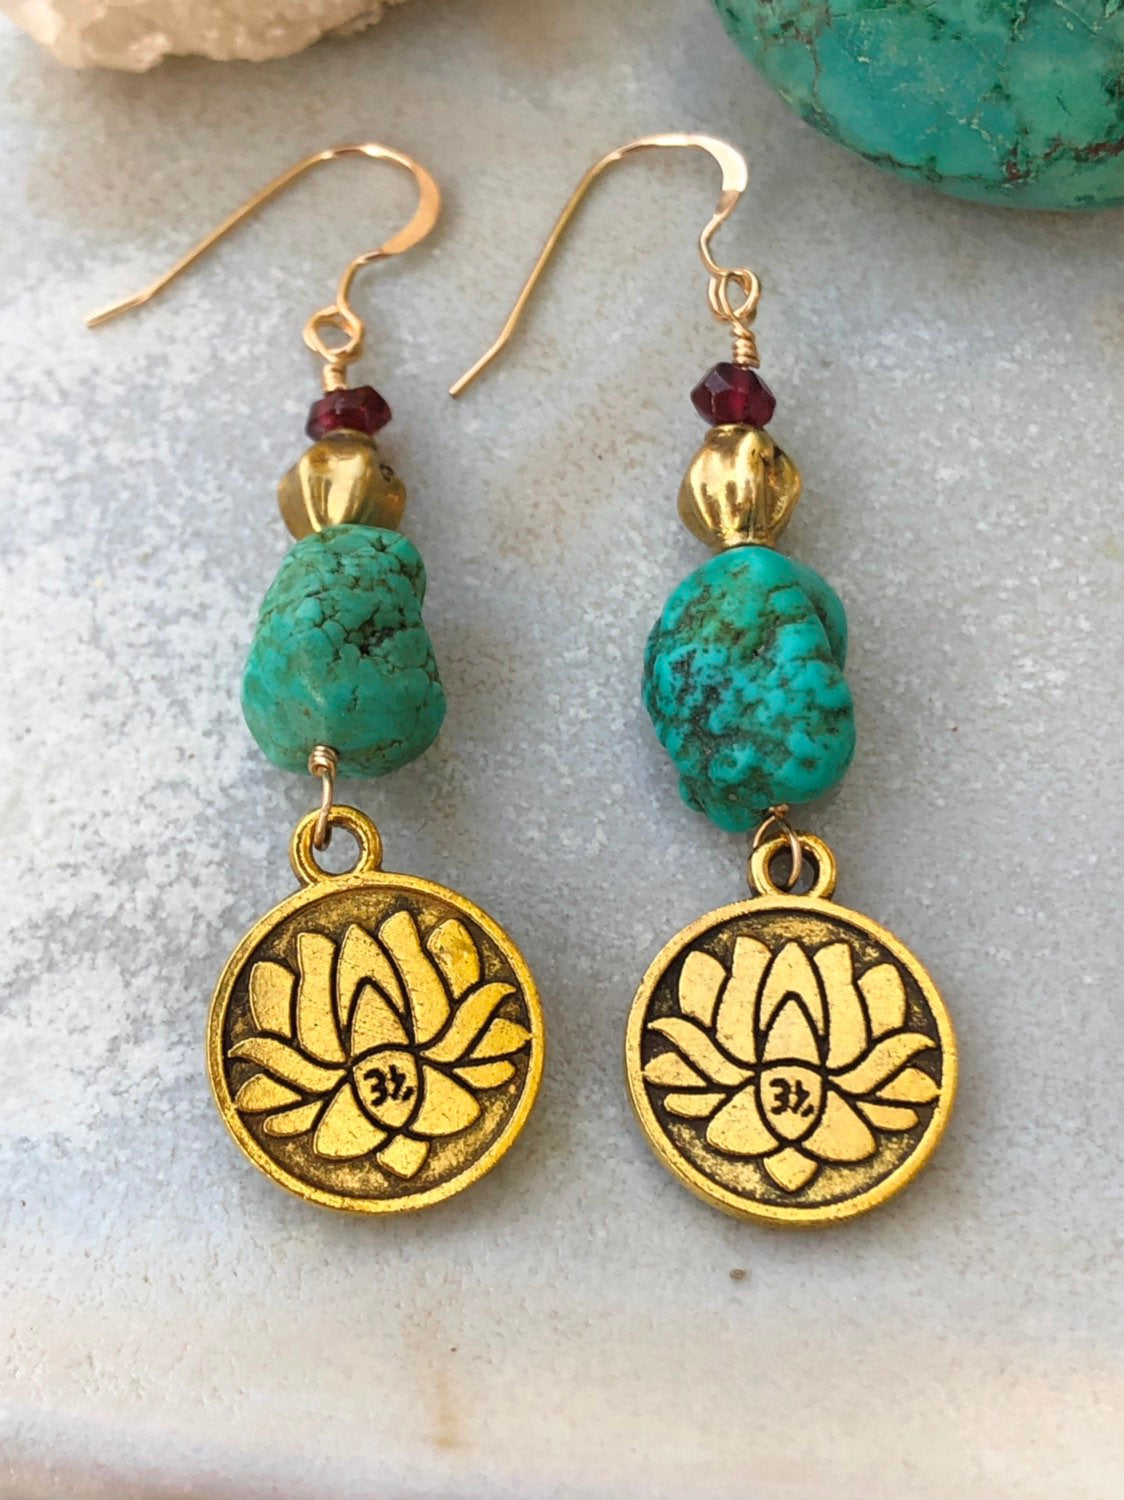 Turquoise Garnet Earrings / 14k Gold Filled / Wire Wrapped / Vintage African Brass / Natural Genuine Turquoise Nuggets Untreated / Lotus